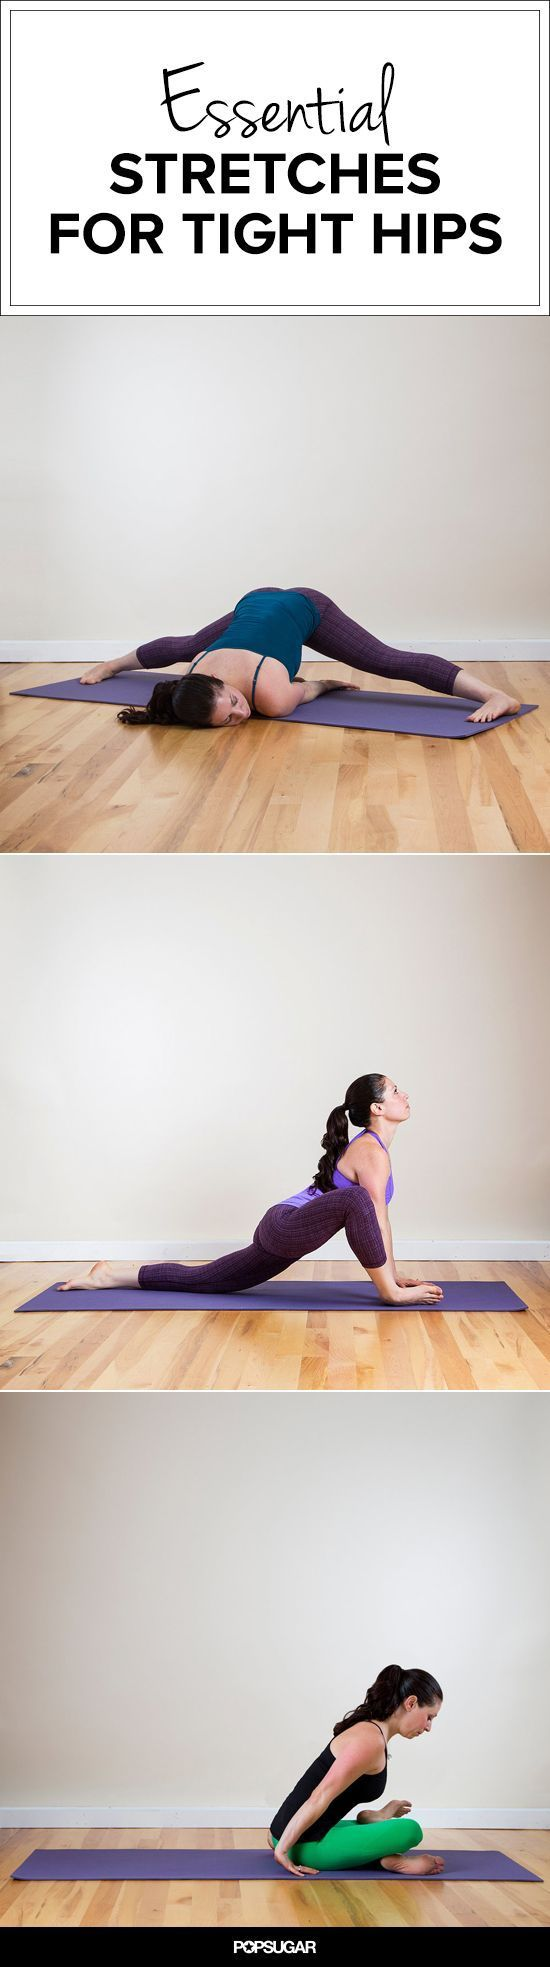 Essential exercises for loosening your hips. Its no good being strong if you aren't flexible make sure you work both. #hips #flexible http://www.amandasweightloss.com